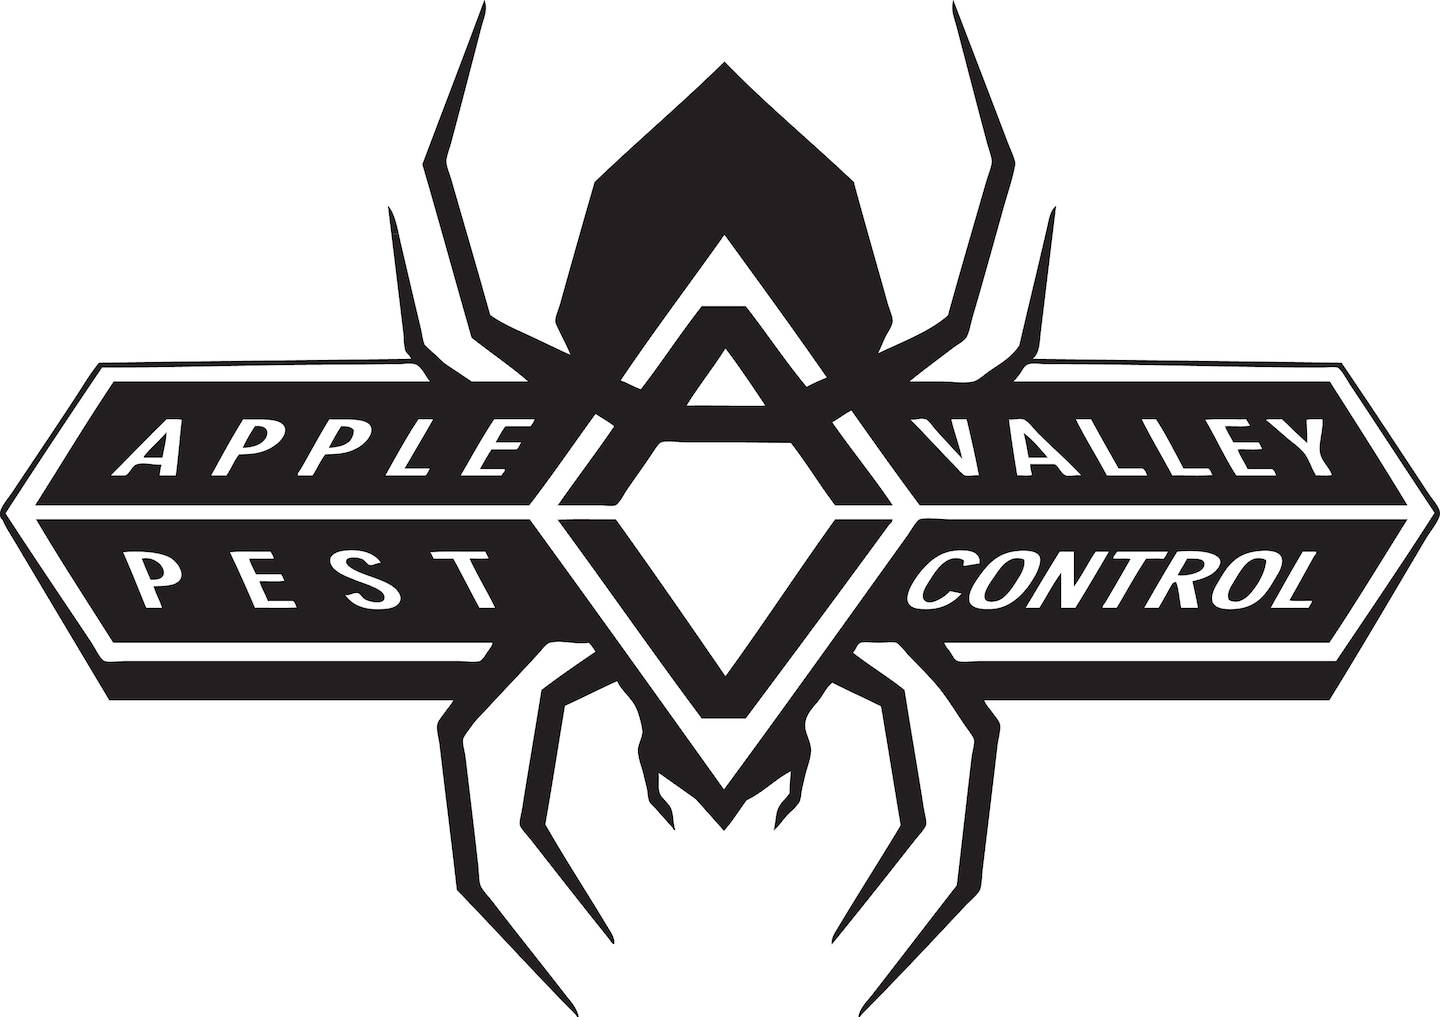 Apple Valley Pest Control, LLC